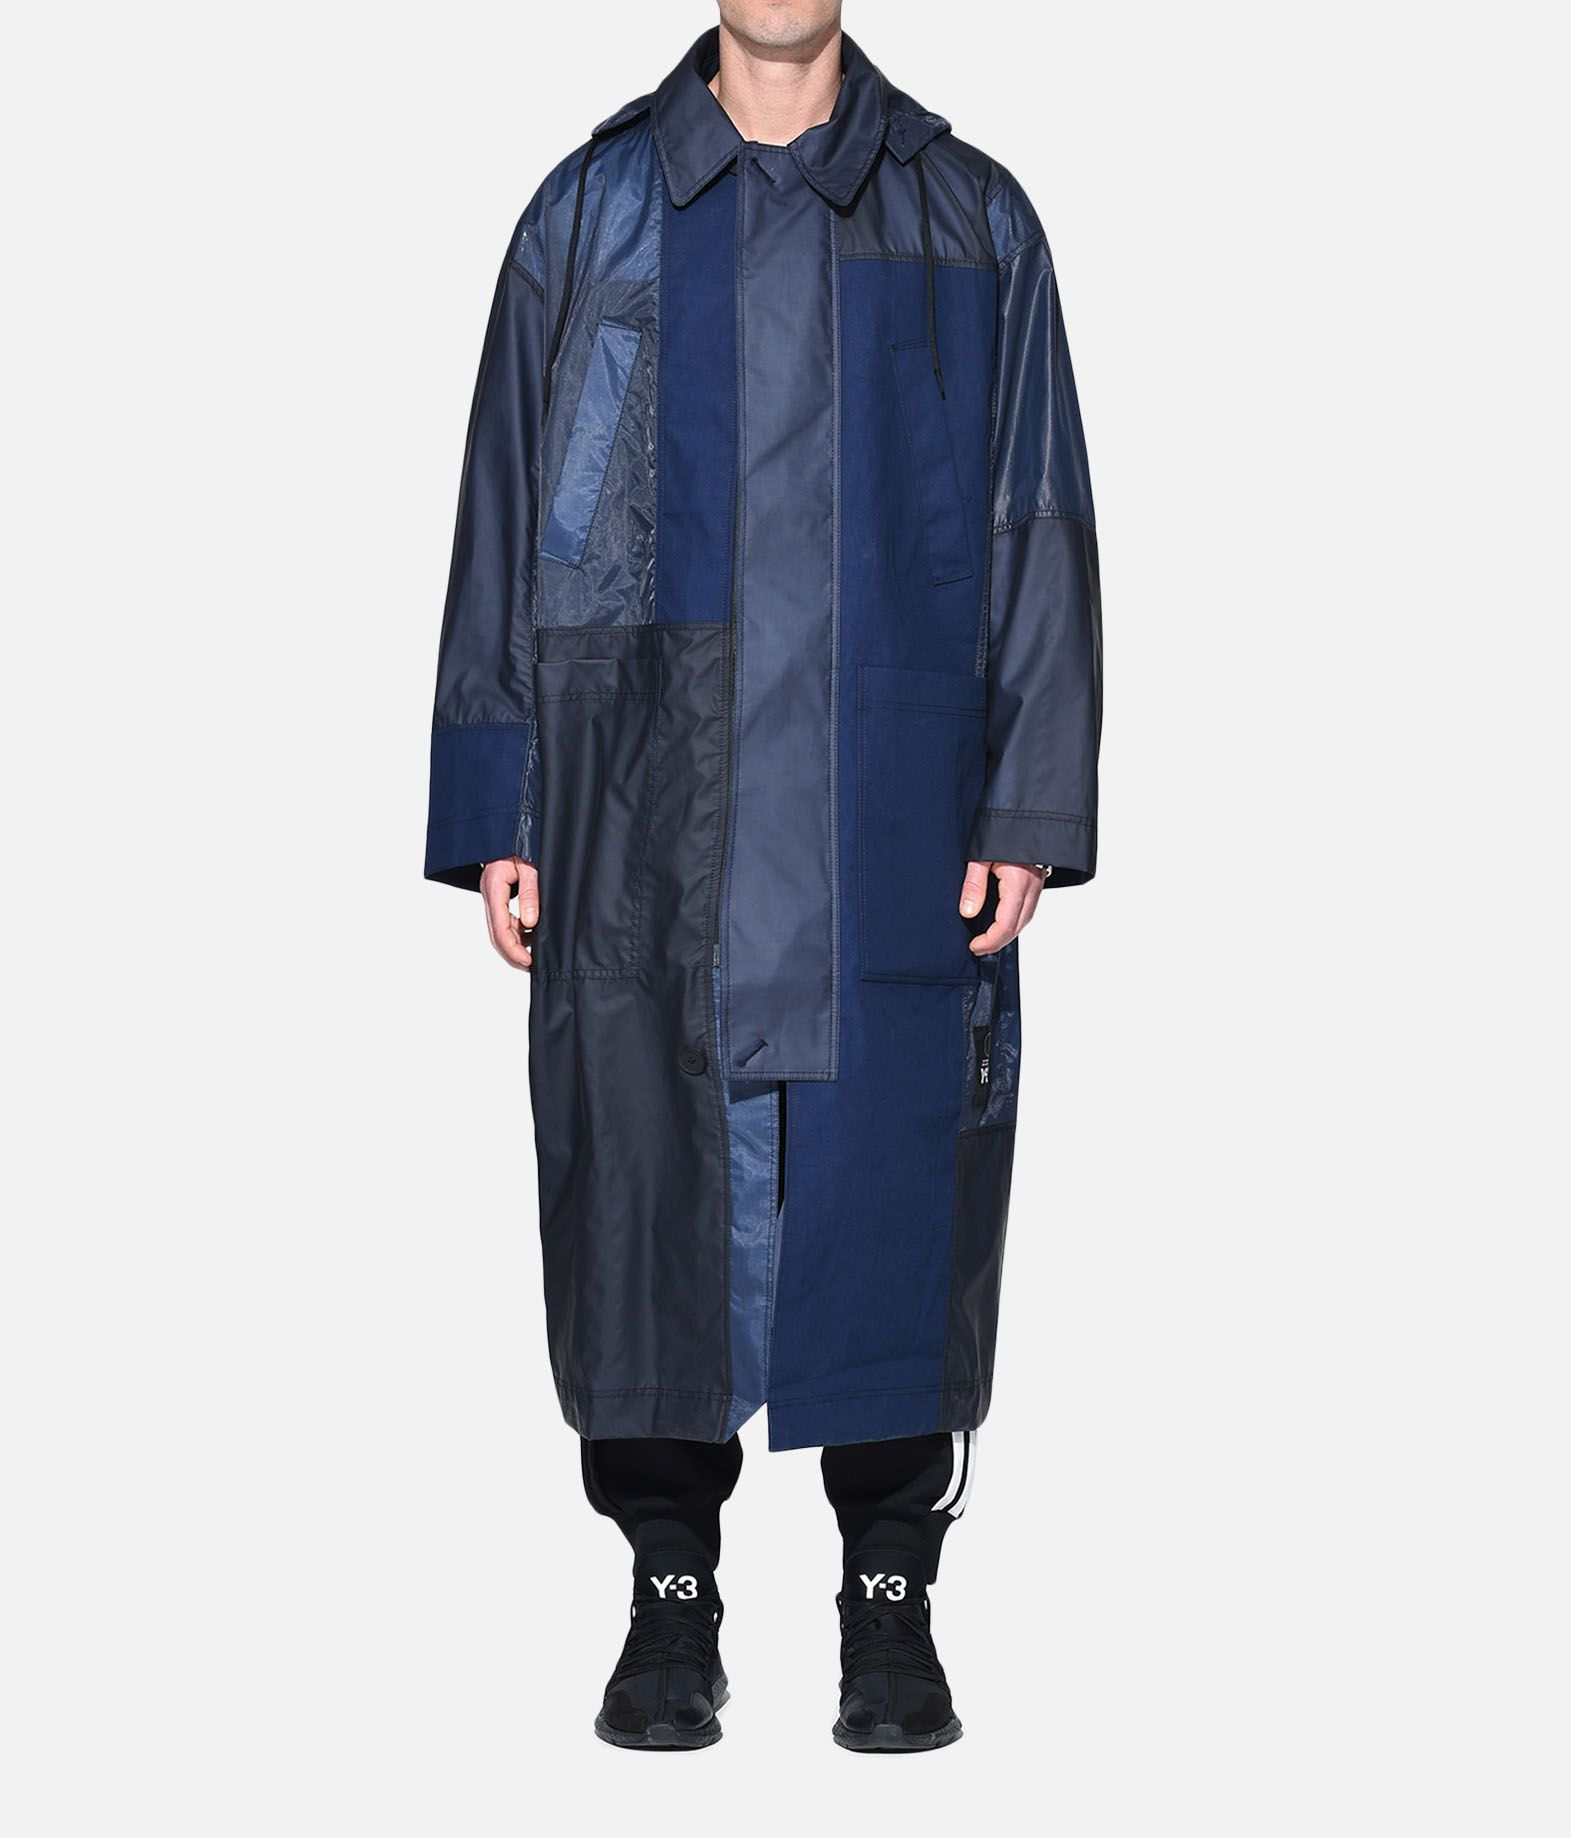 Y-3 Y-3 Patchwork Long Coat Cappotto Uomo r